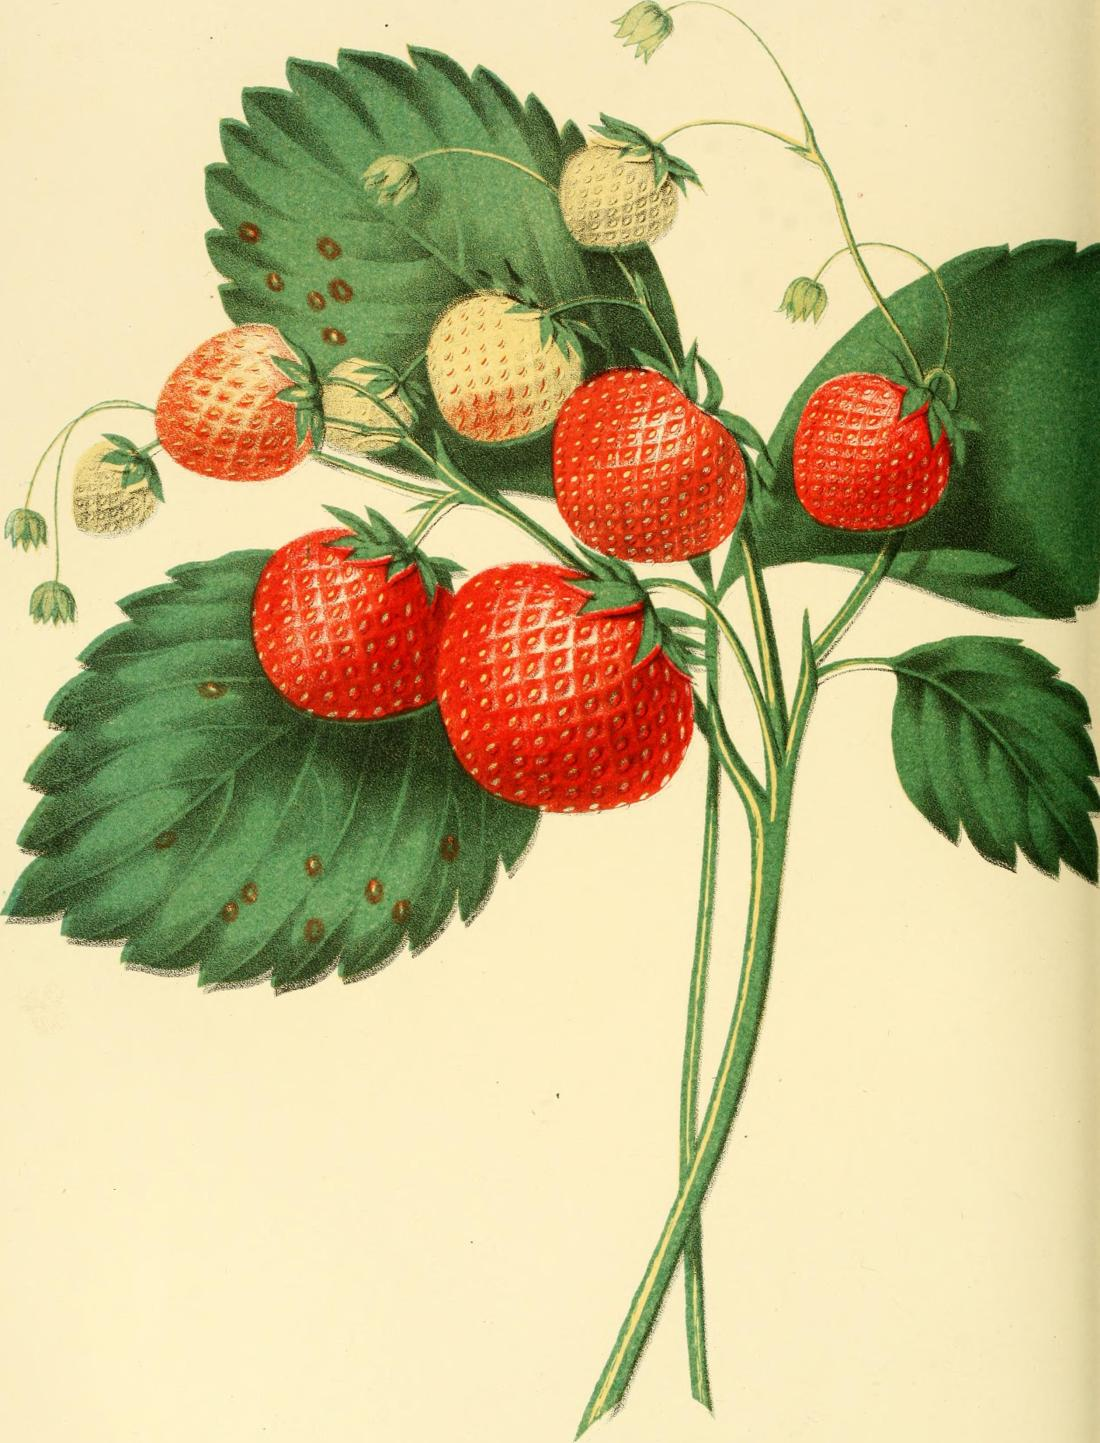 Boston Pine strawberry